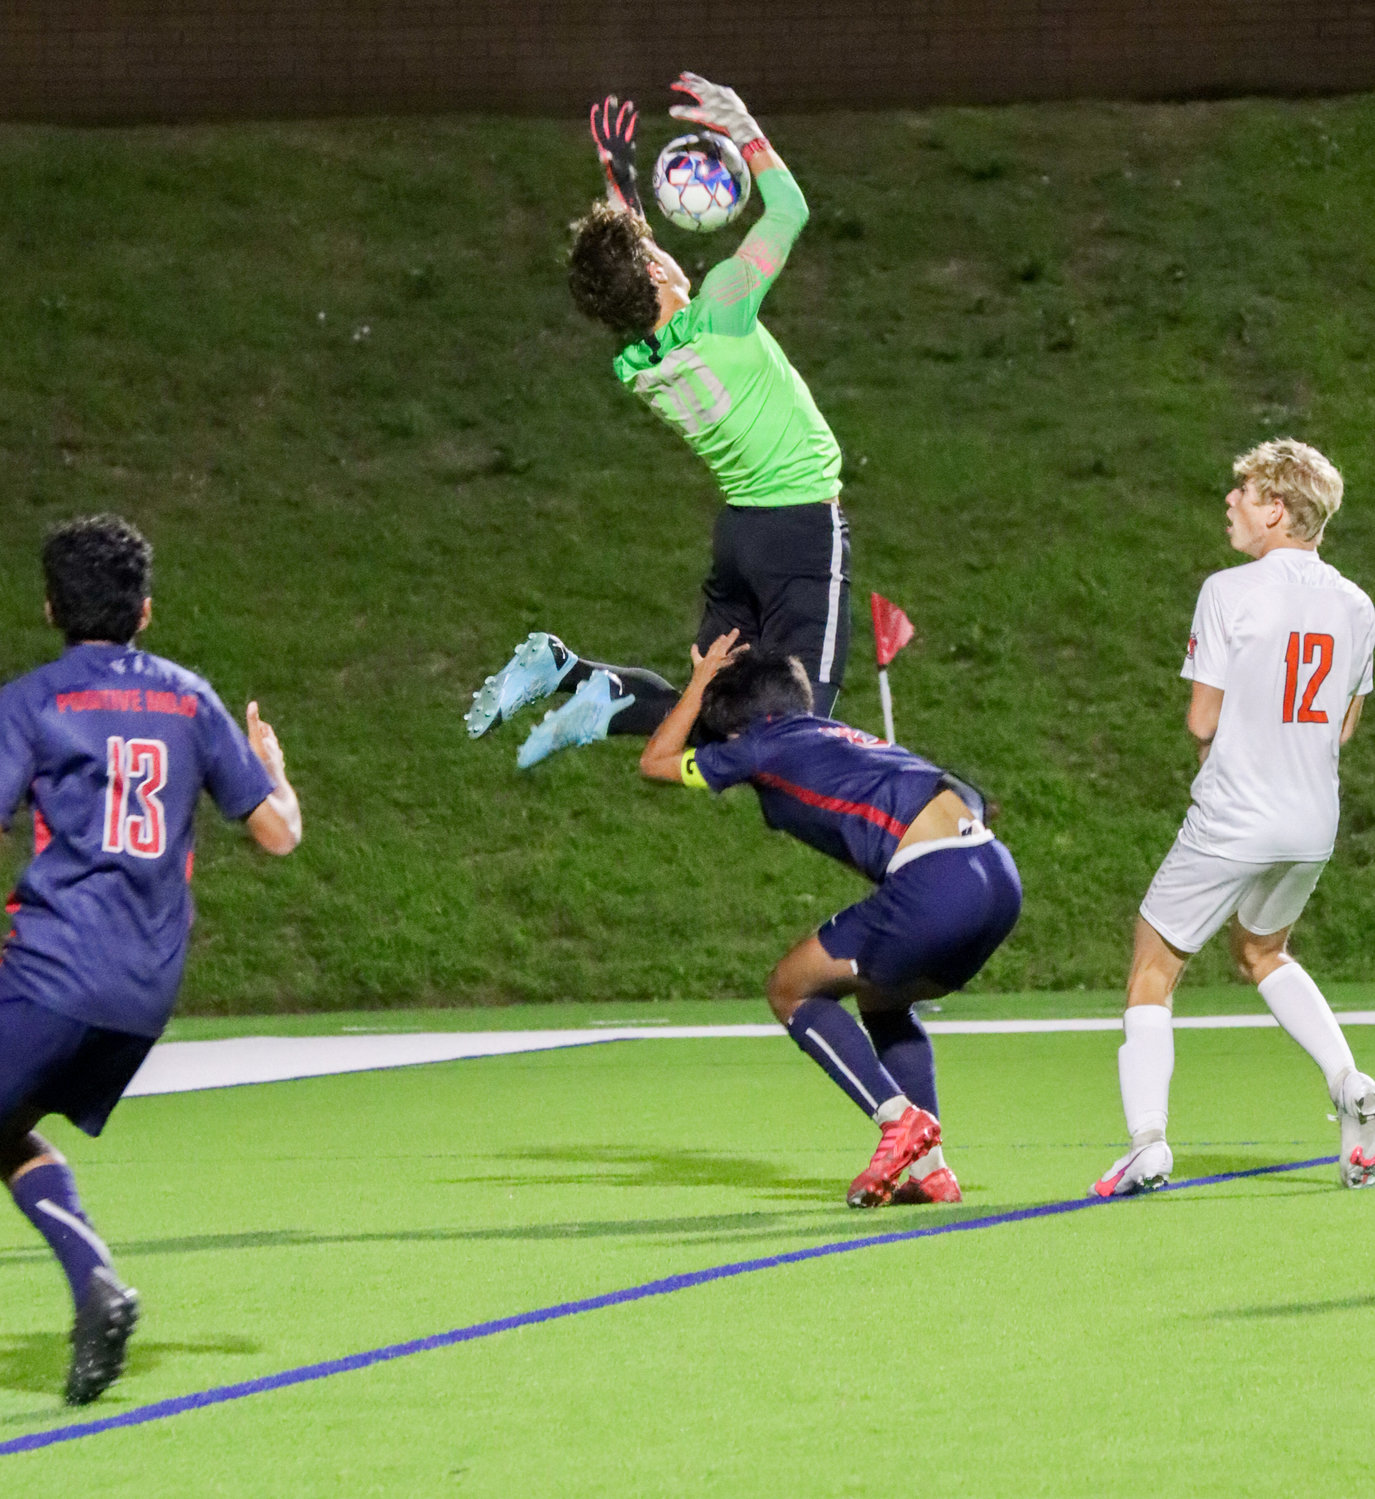 Tompkins senior goalkeeper Paulo Valente goes up for a save during the Falcons' Class 6A regional quarterfinal win over Seven Lakes on Friday, April 2, at Rhodes Stadium.